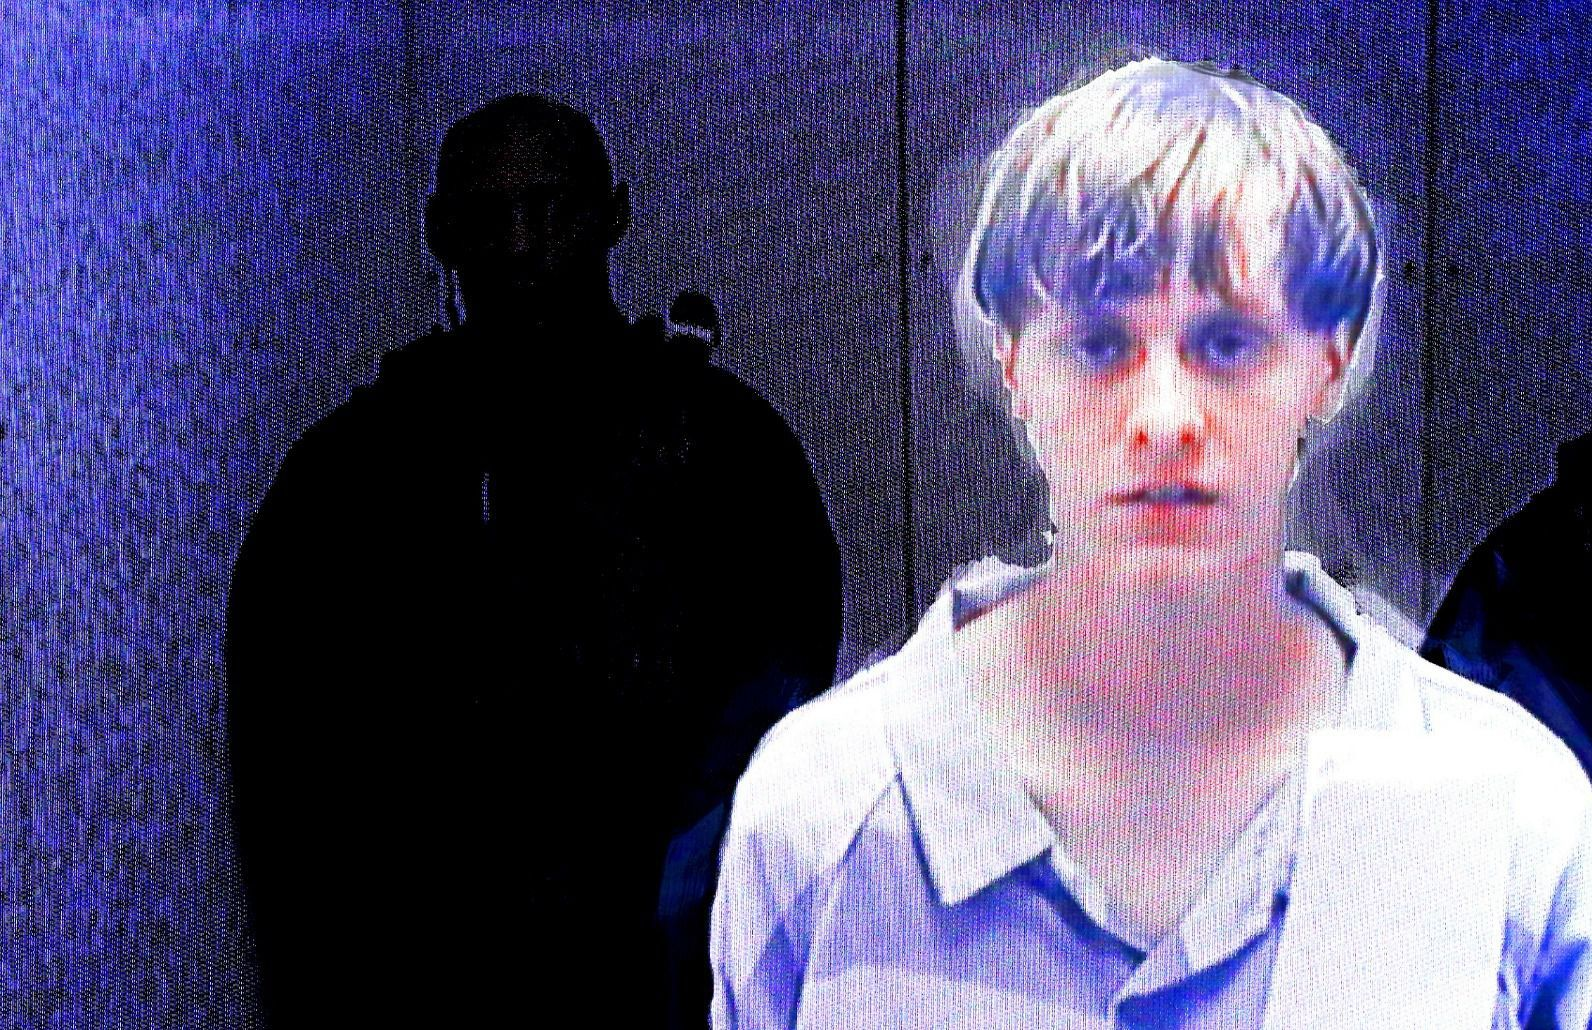 Church Shooter Dylann Roof Wants To Fire Jewish Lawyer